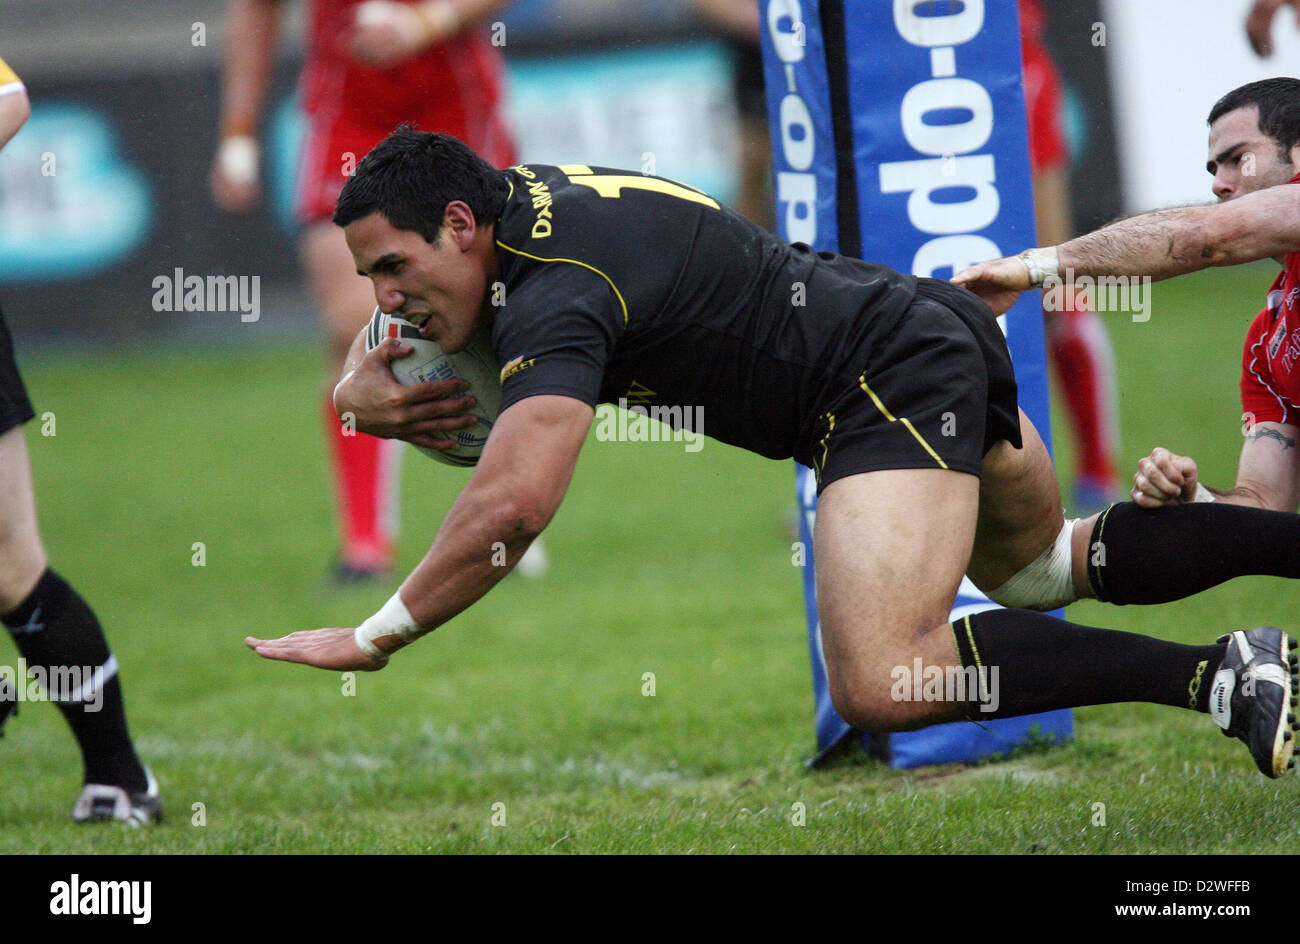 23.08.08. Celtic Crusaders v Salford City Reds Crusaders' David Tangata-Toa dives over to score try. - Stock Image